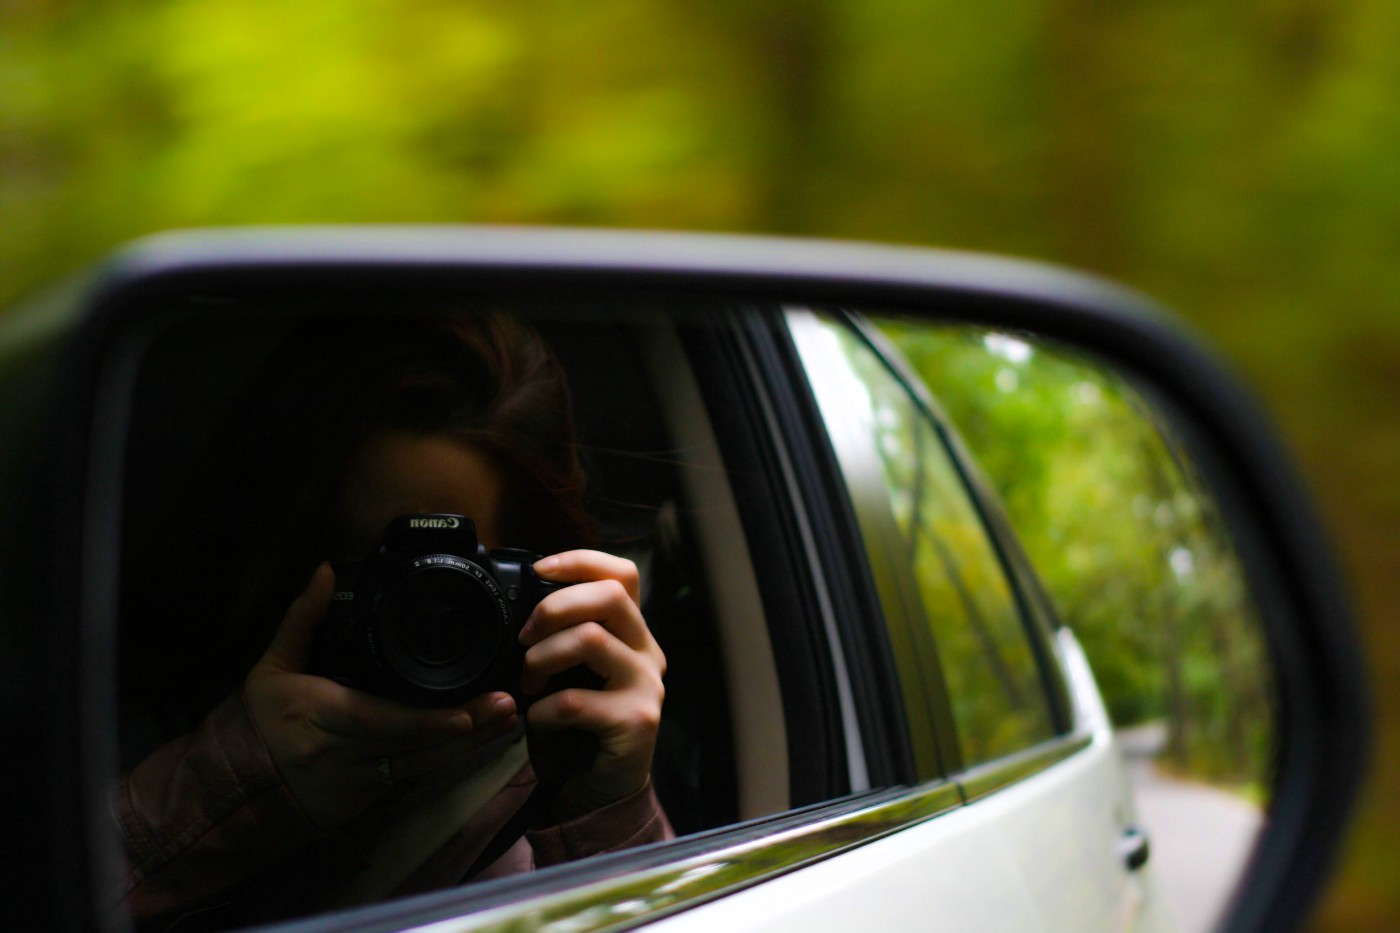 woman in a car taking a picture with a camera using the reflection from the rear view mirror